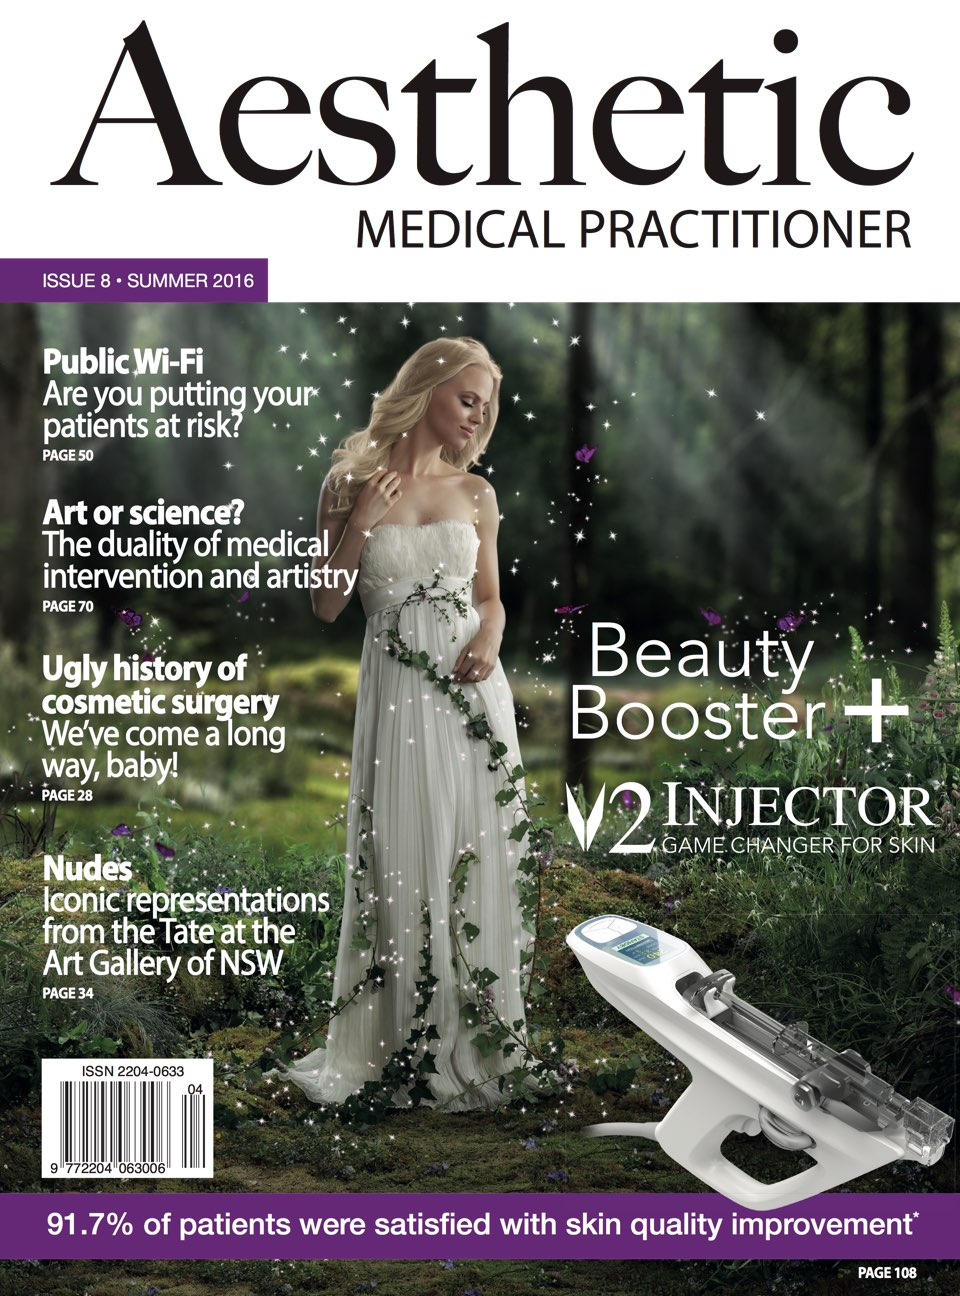 Aesthetic Medical Practitioner - Issue 8